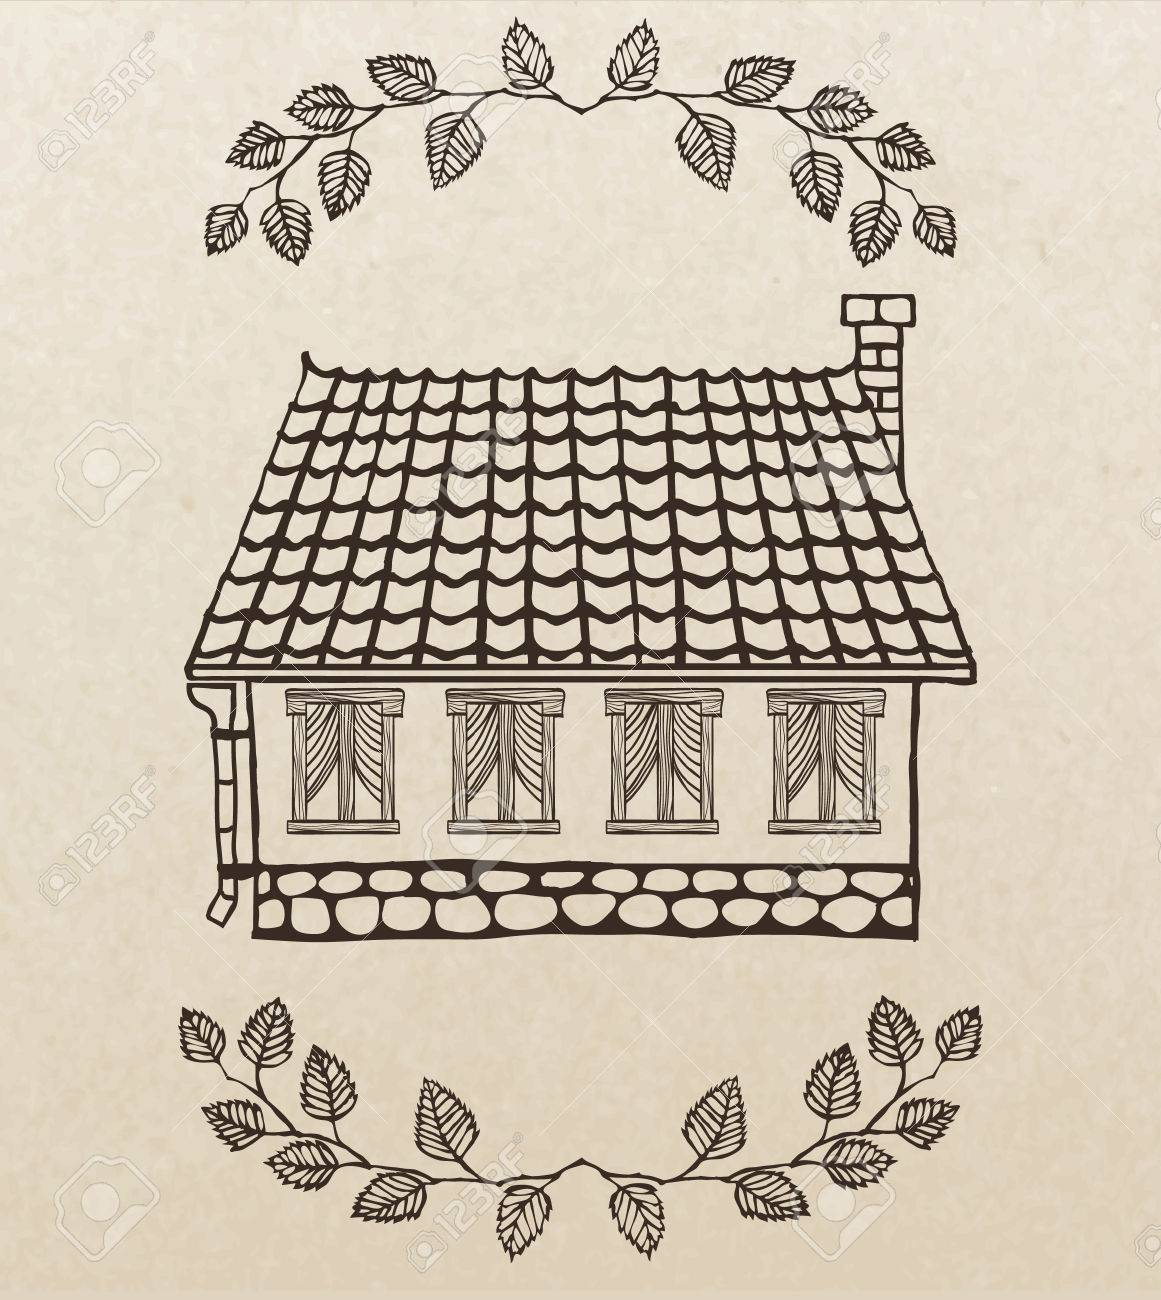 1161x1300 Cute Hand Drawn House With Chimney And Tiled Roof Royalty Free